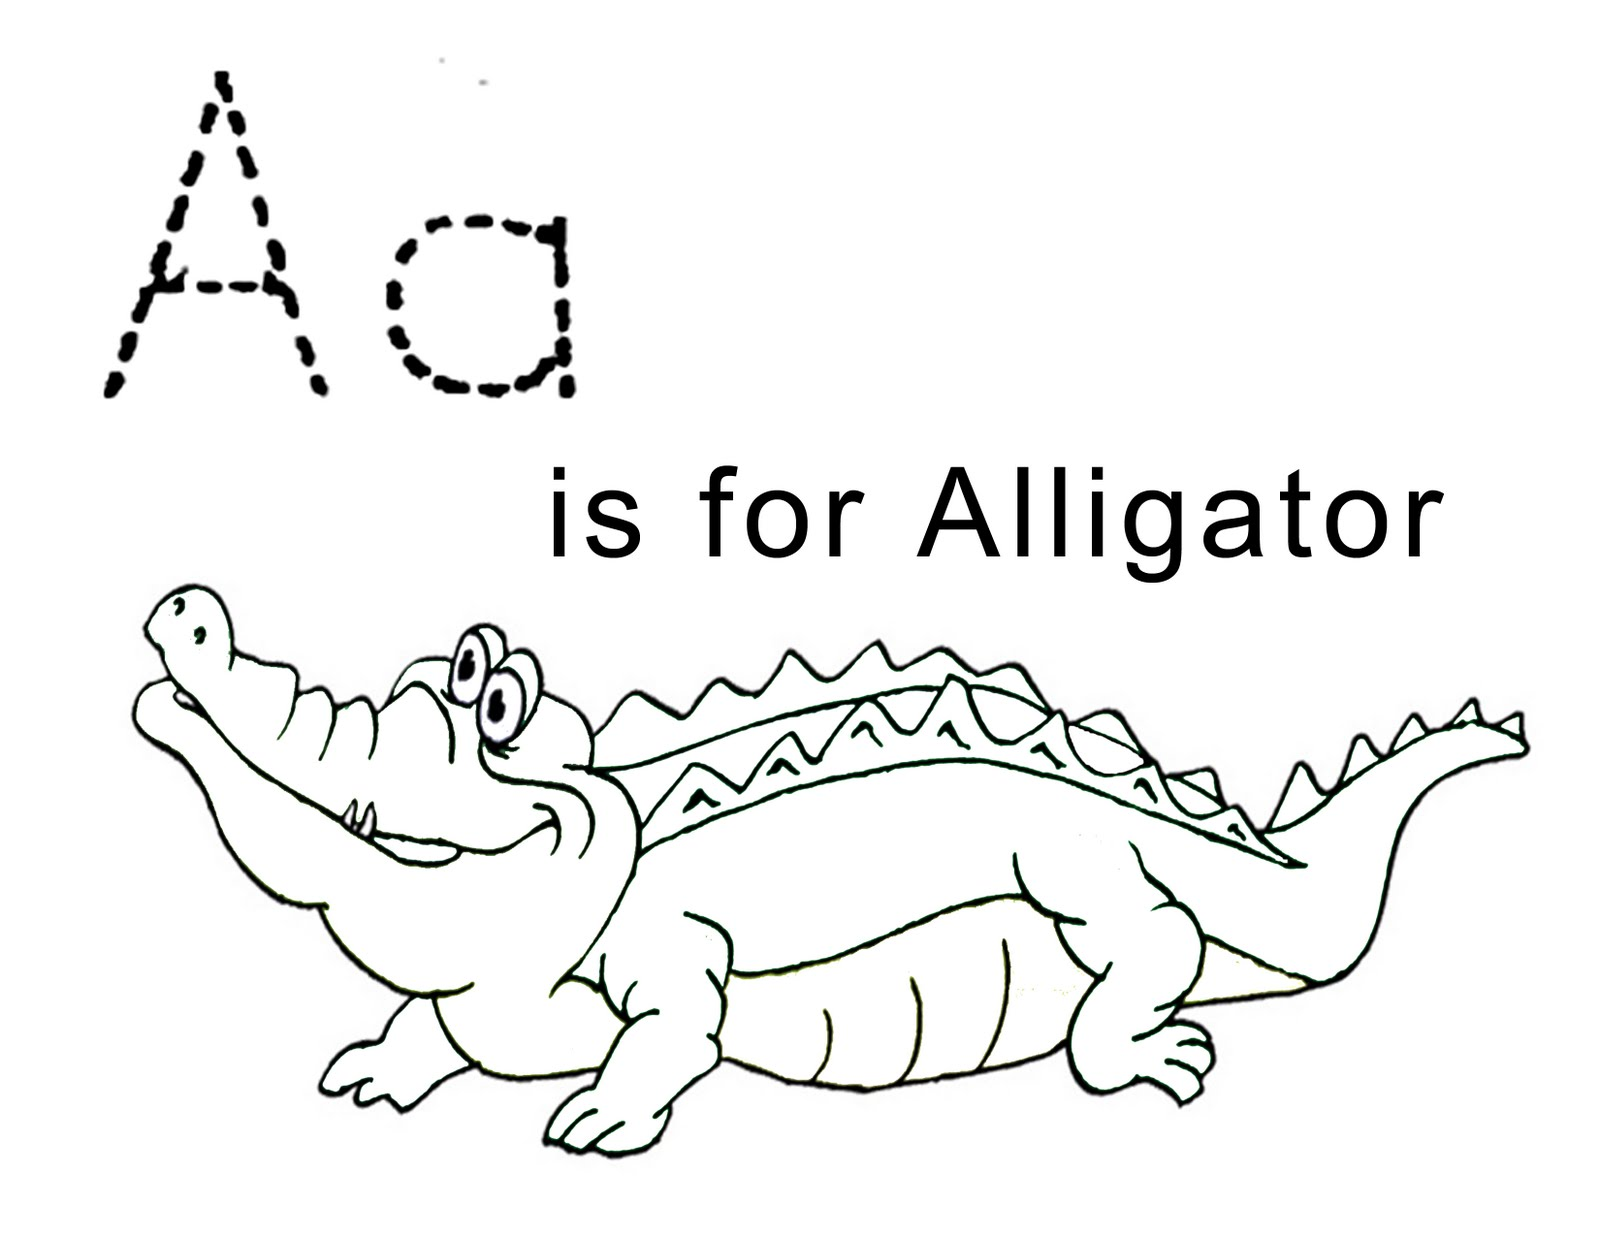 alligator coloring page - A Colouring Pages